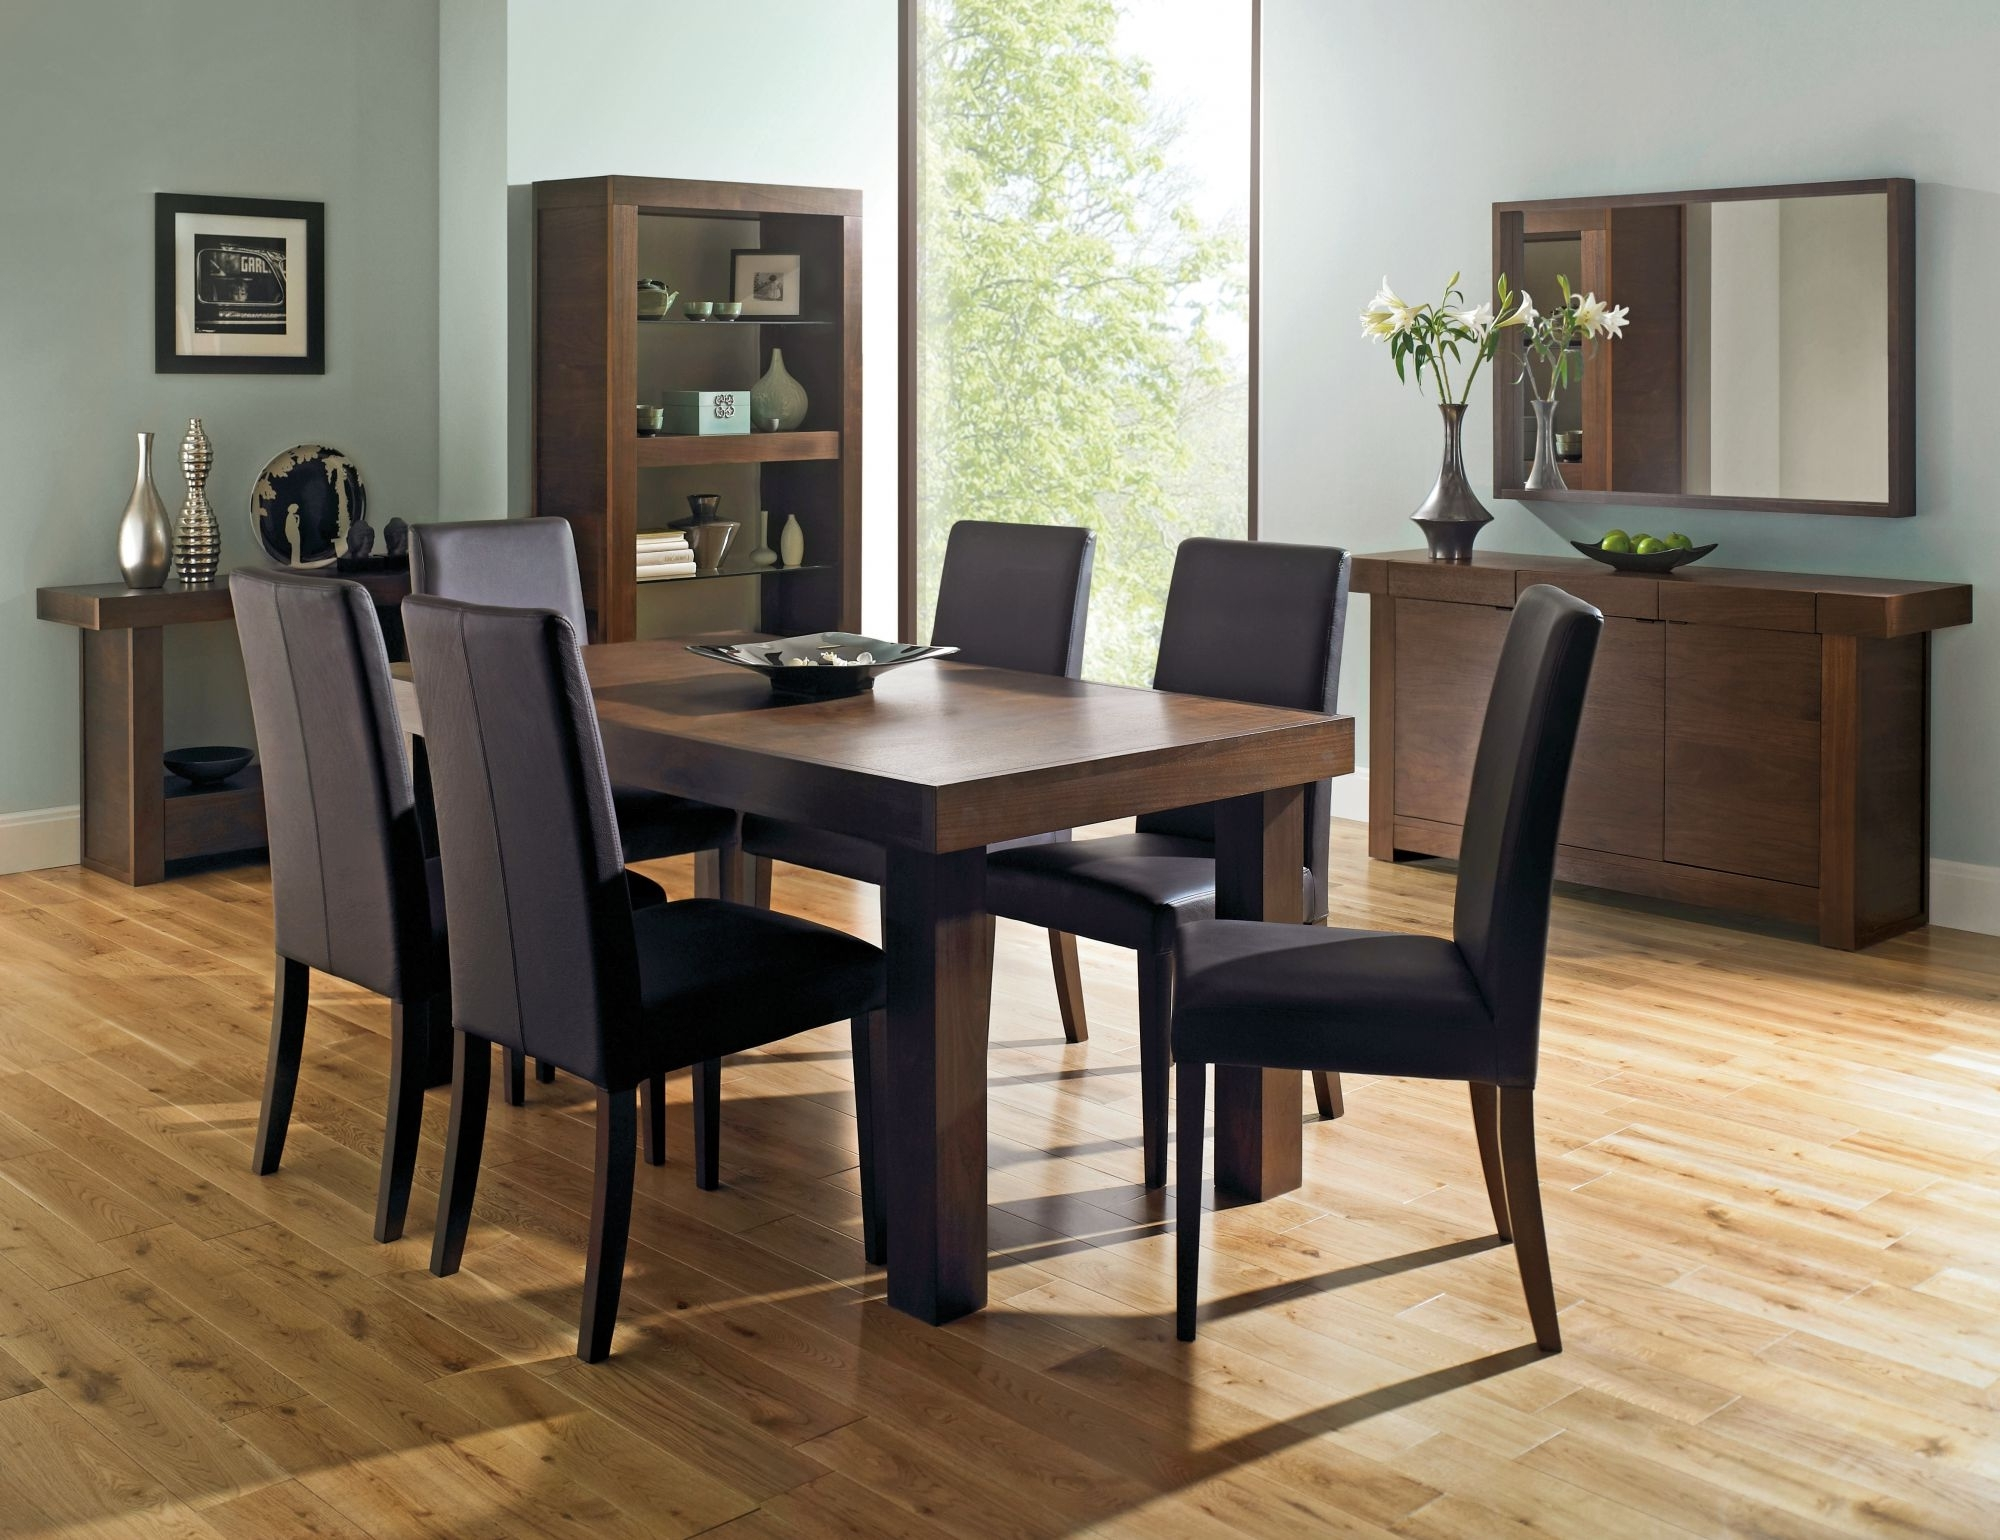 Preferred Round 6 Person Dining Tables Throughout Akita 6 Seater Panel Dining Table – Large (Gallery 25 of 25)